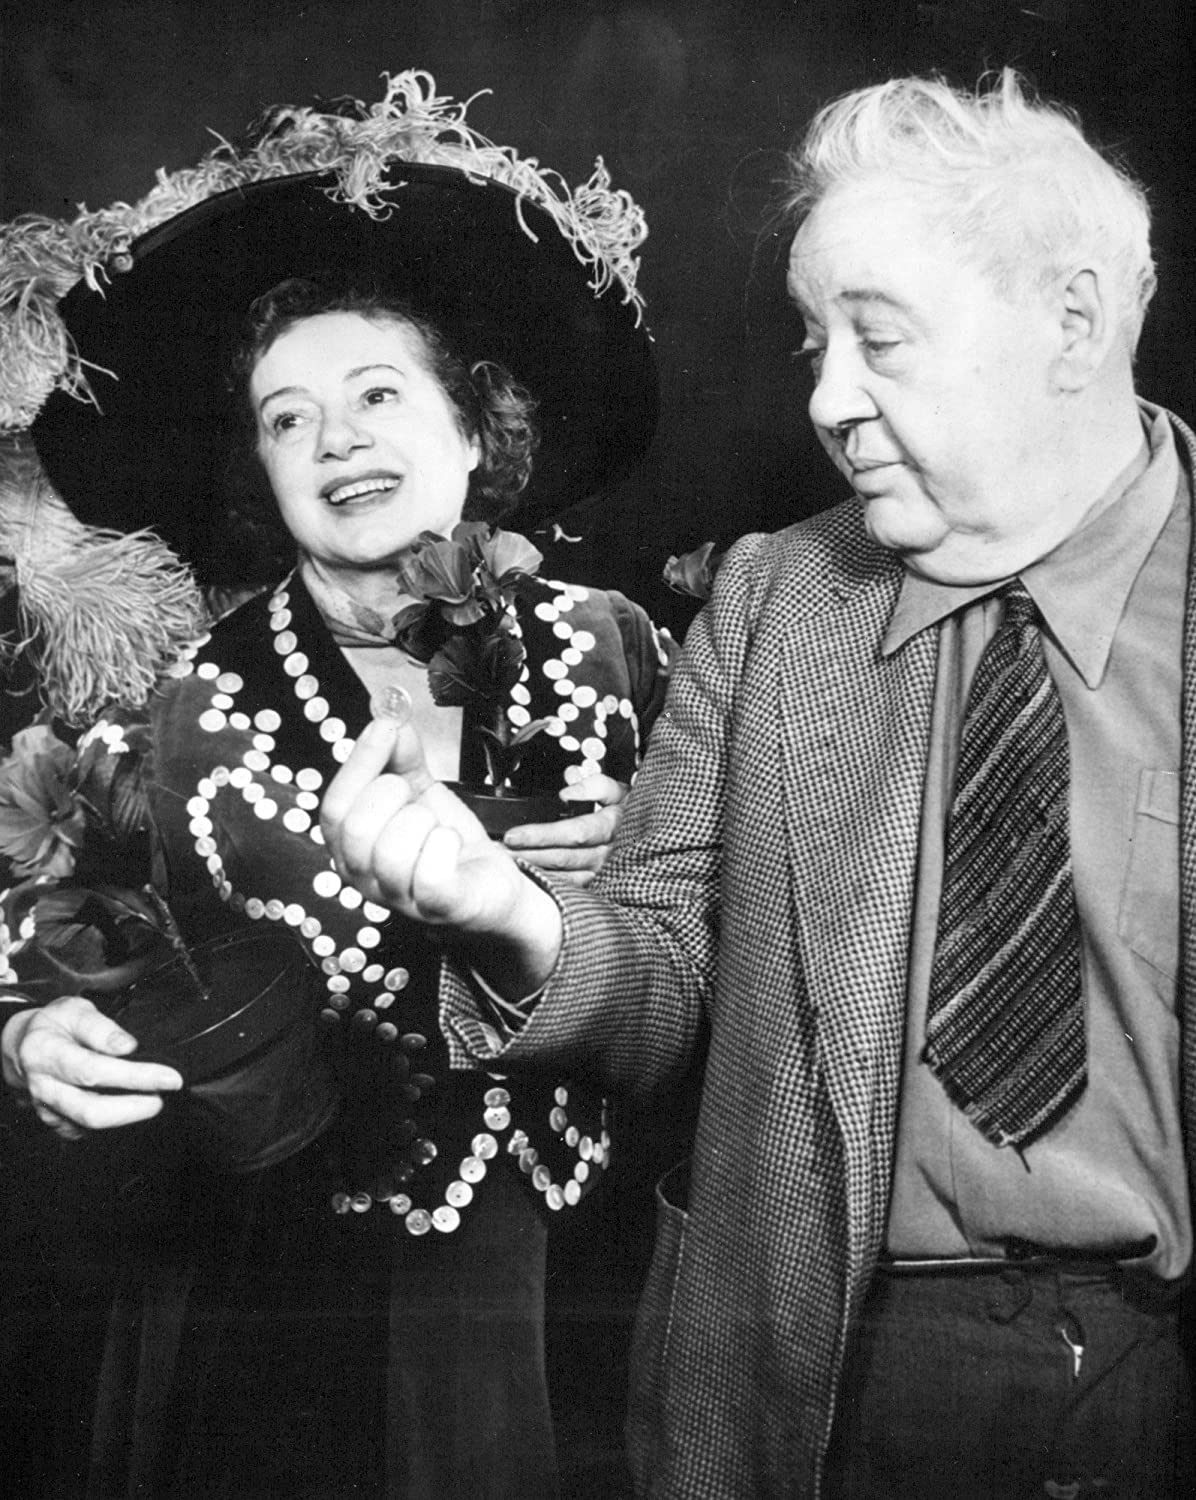 Discussion on this topic: Emily O'Brien born May 28, 1985 (age 33), charles-laughton-1899-962/